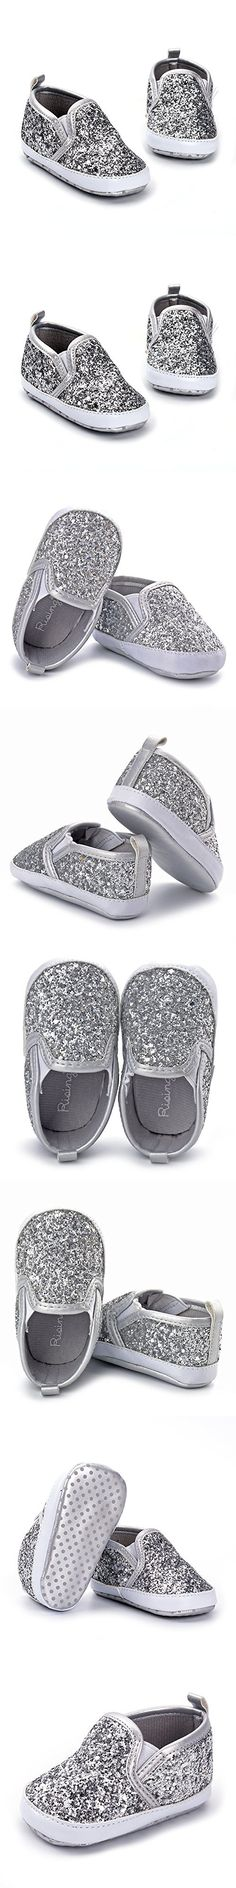 ღ¸.•❤ ƁҽႦҽ ღ .¸¸.•*¨*• Enteer Baby Girls' Bling Loafers Shoes Silver US 3